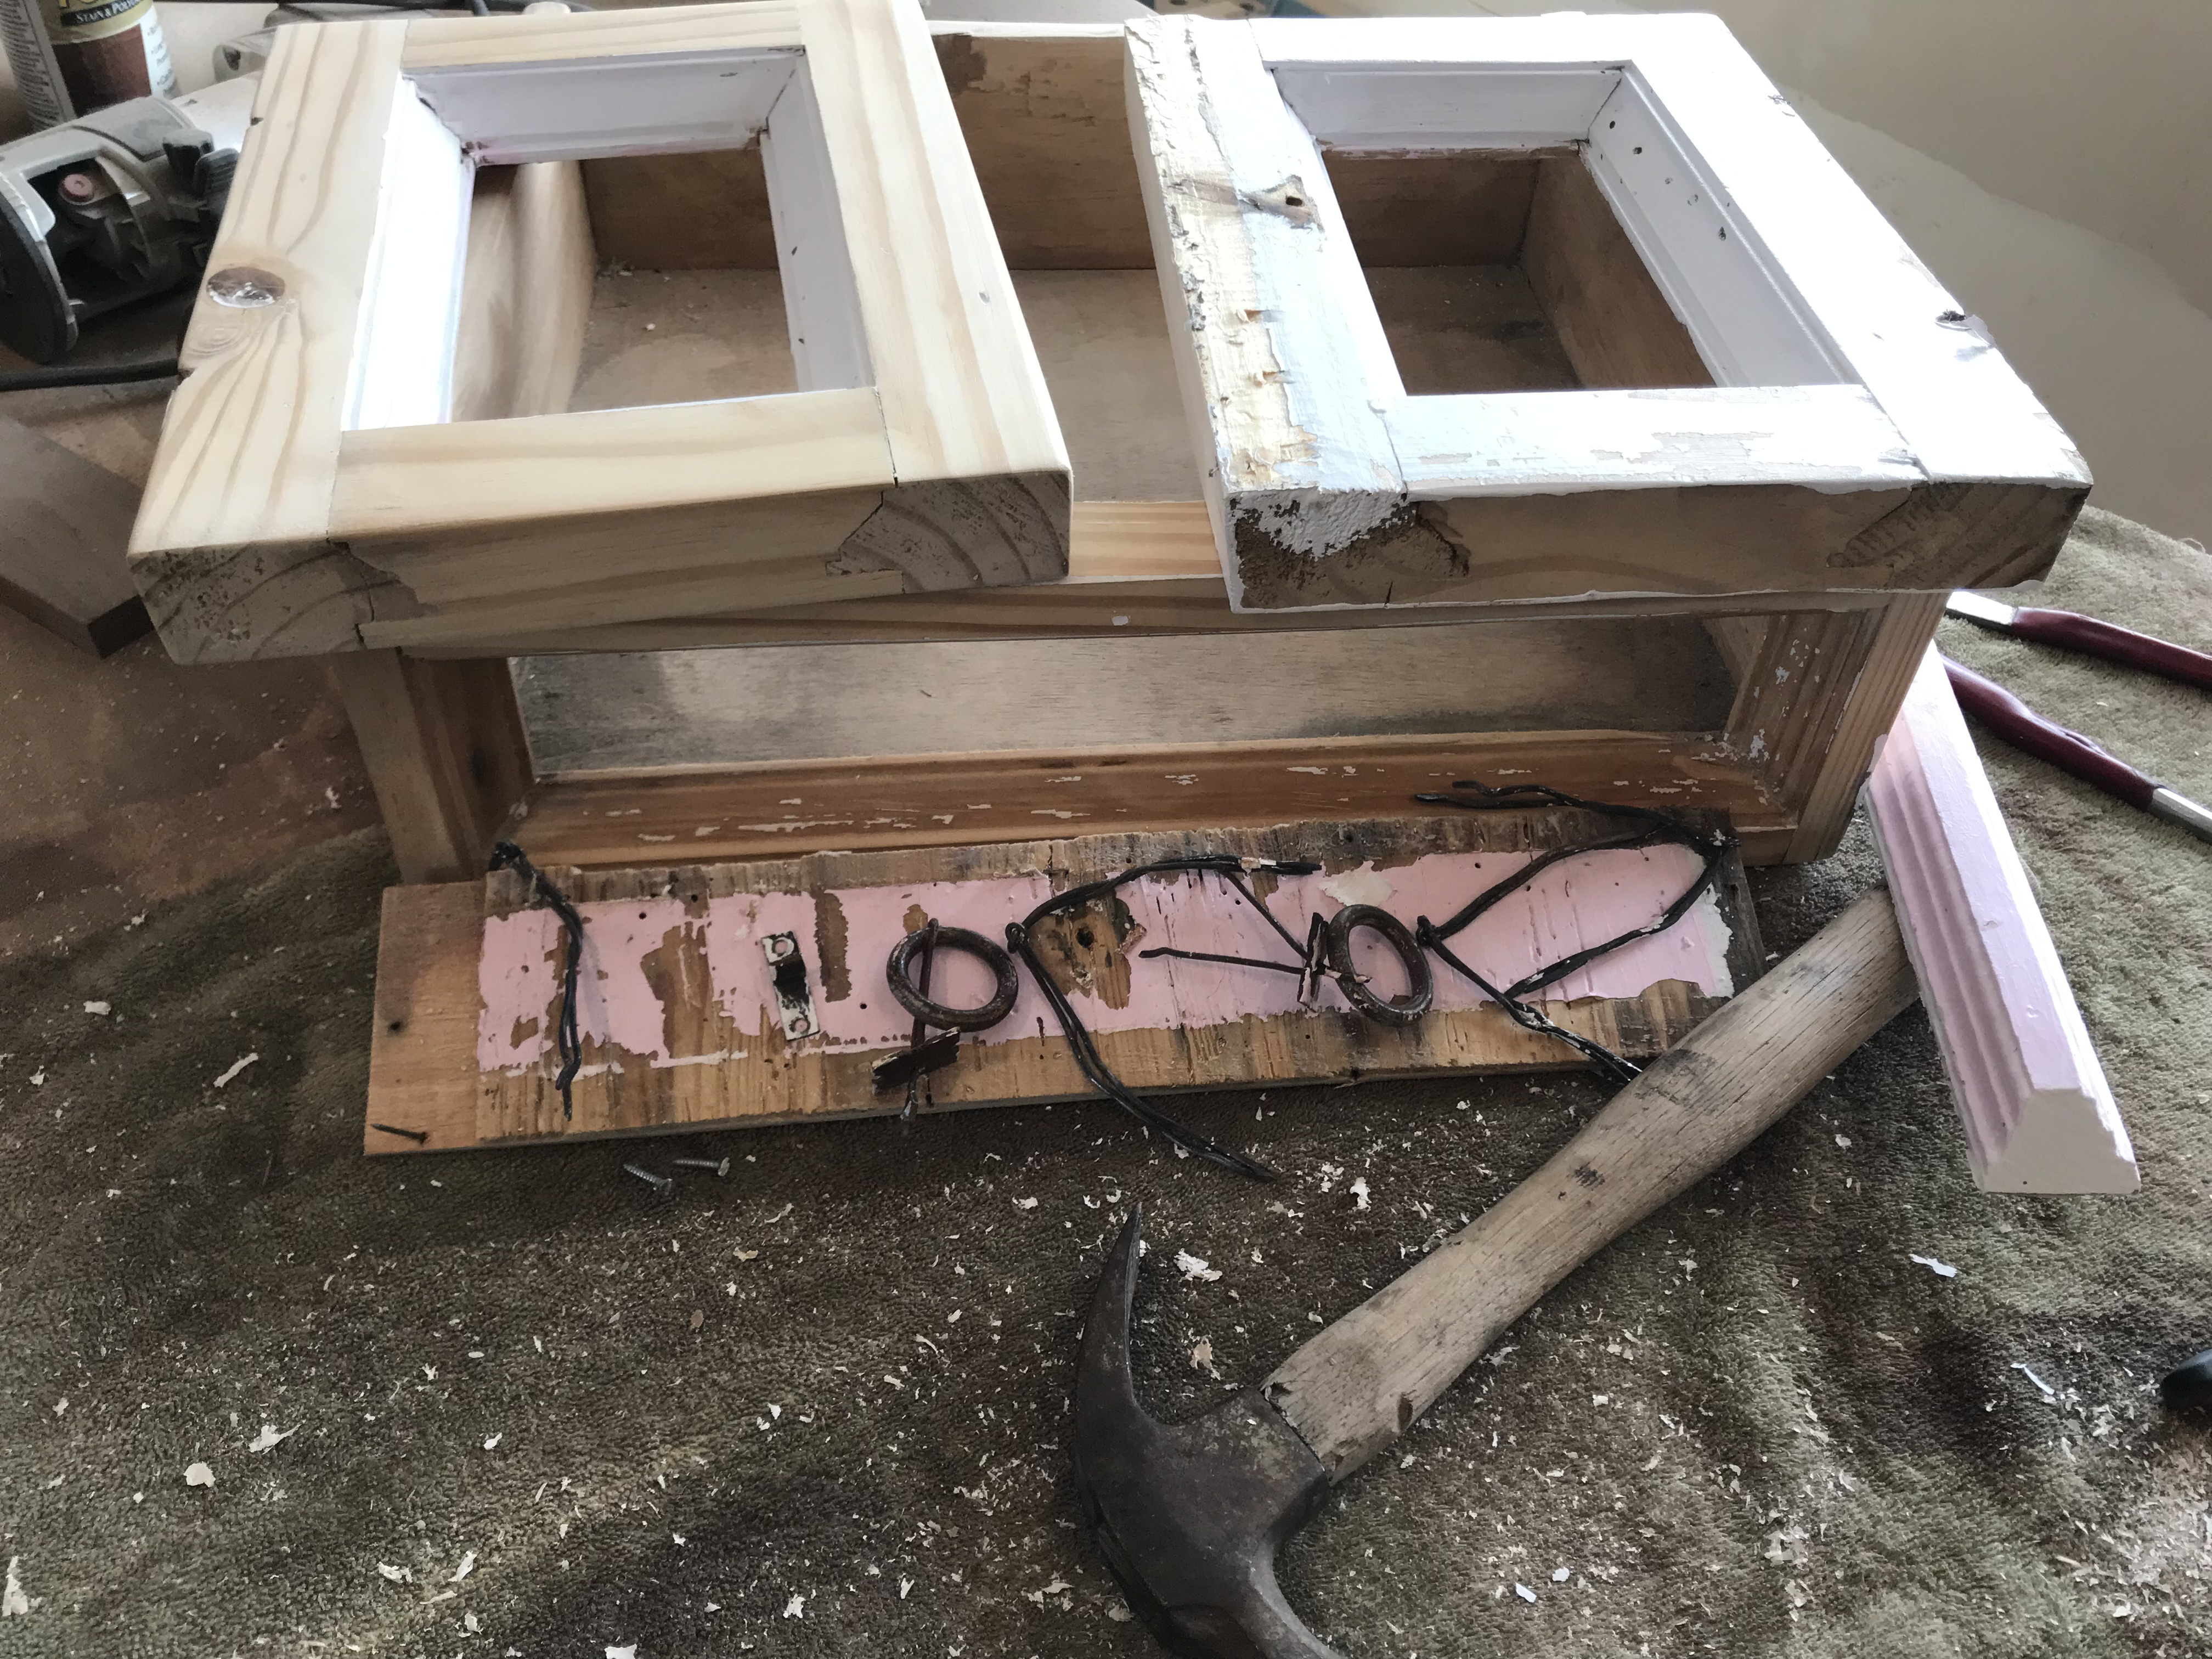 A thin wide cabinet drawer with two small cabinet doors sitting on top of it in various stages of paint scraping and sanding, and a pink drawer face with old wire hinges and drawer pulls sitting in the foreground